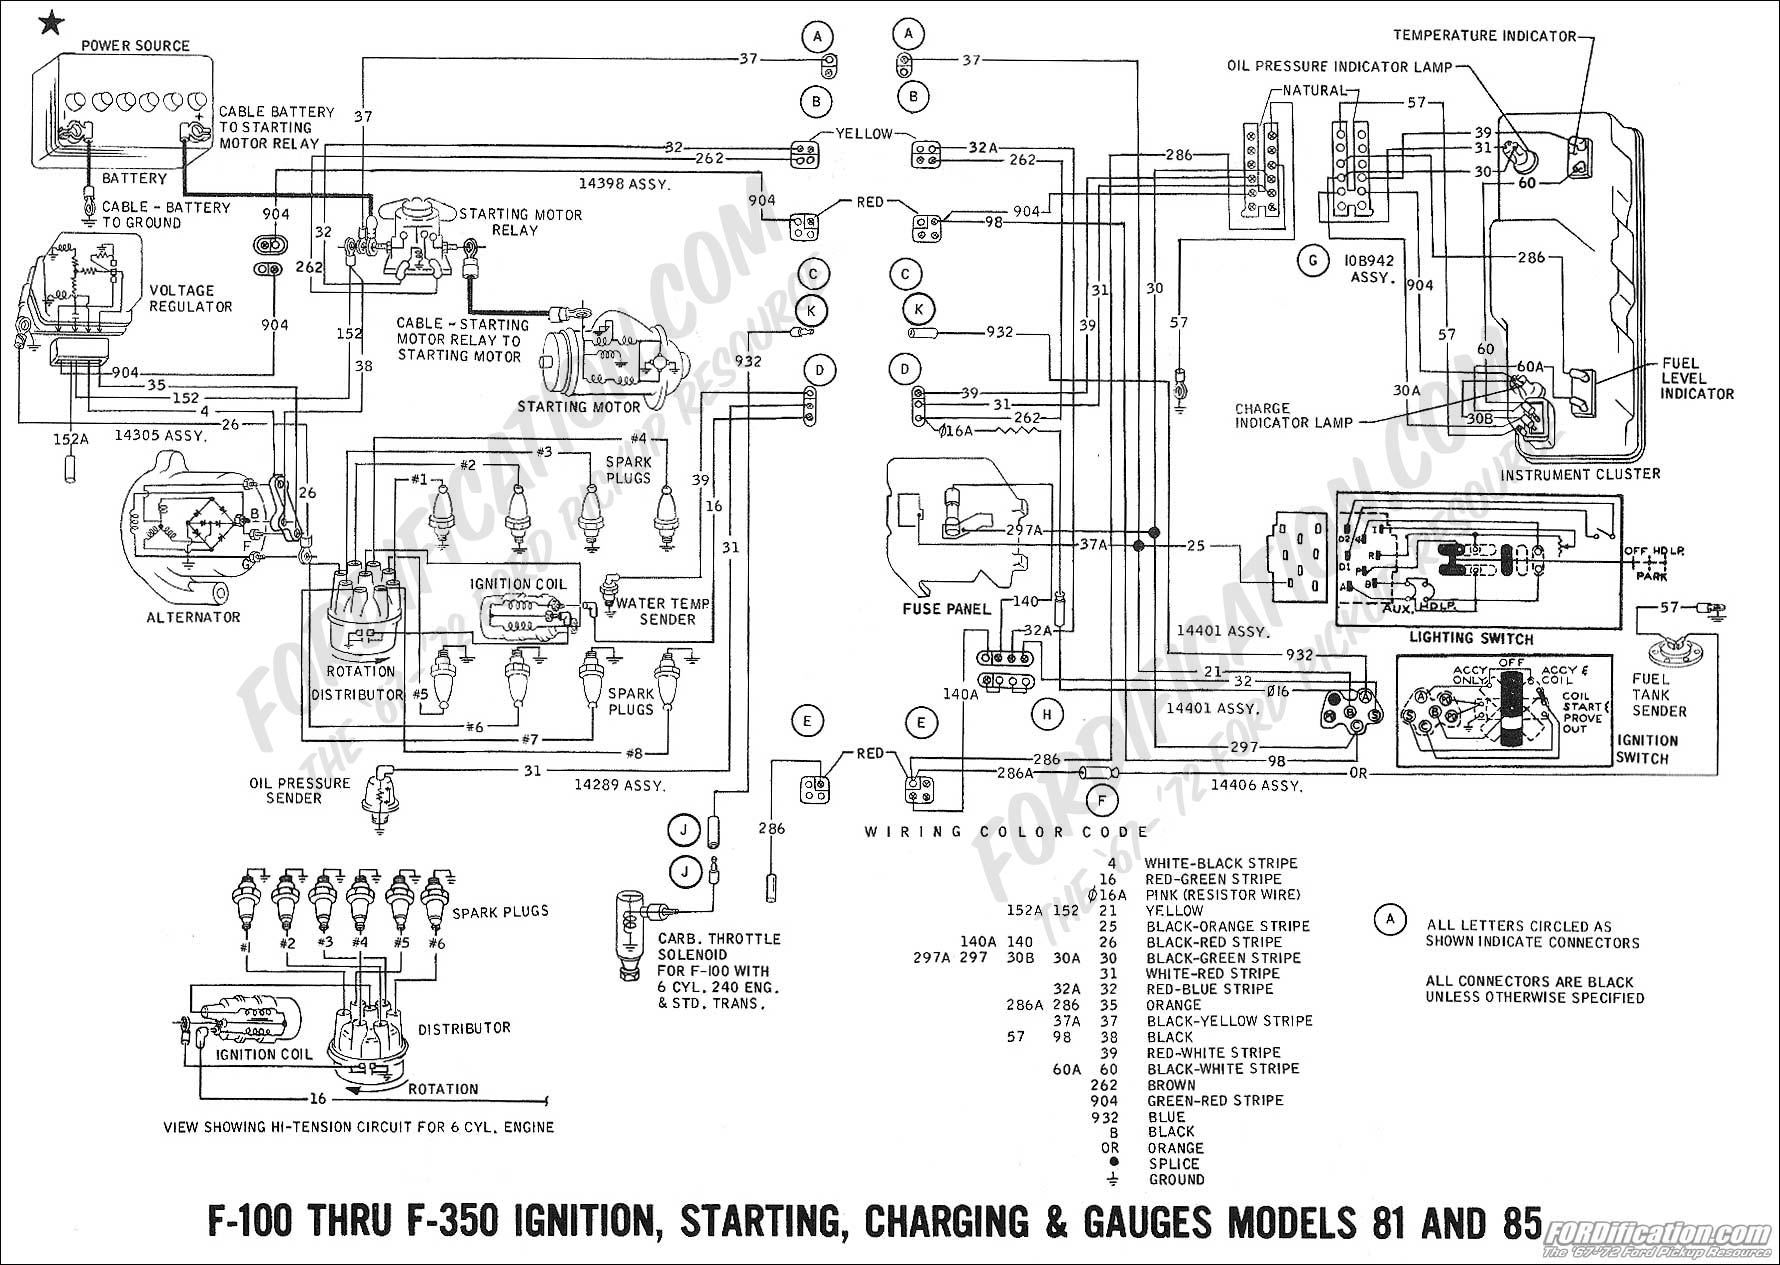 Wrg 85 Cj5 Wiring Diagram